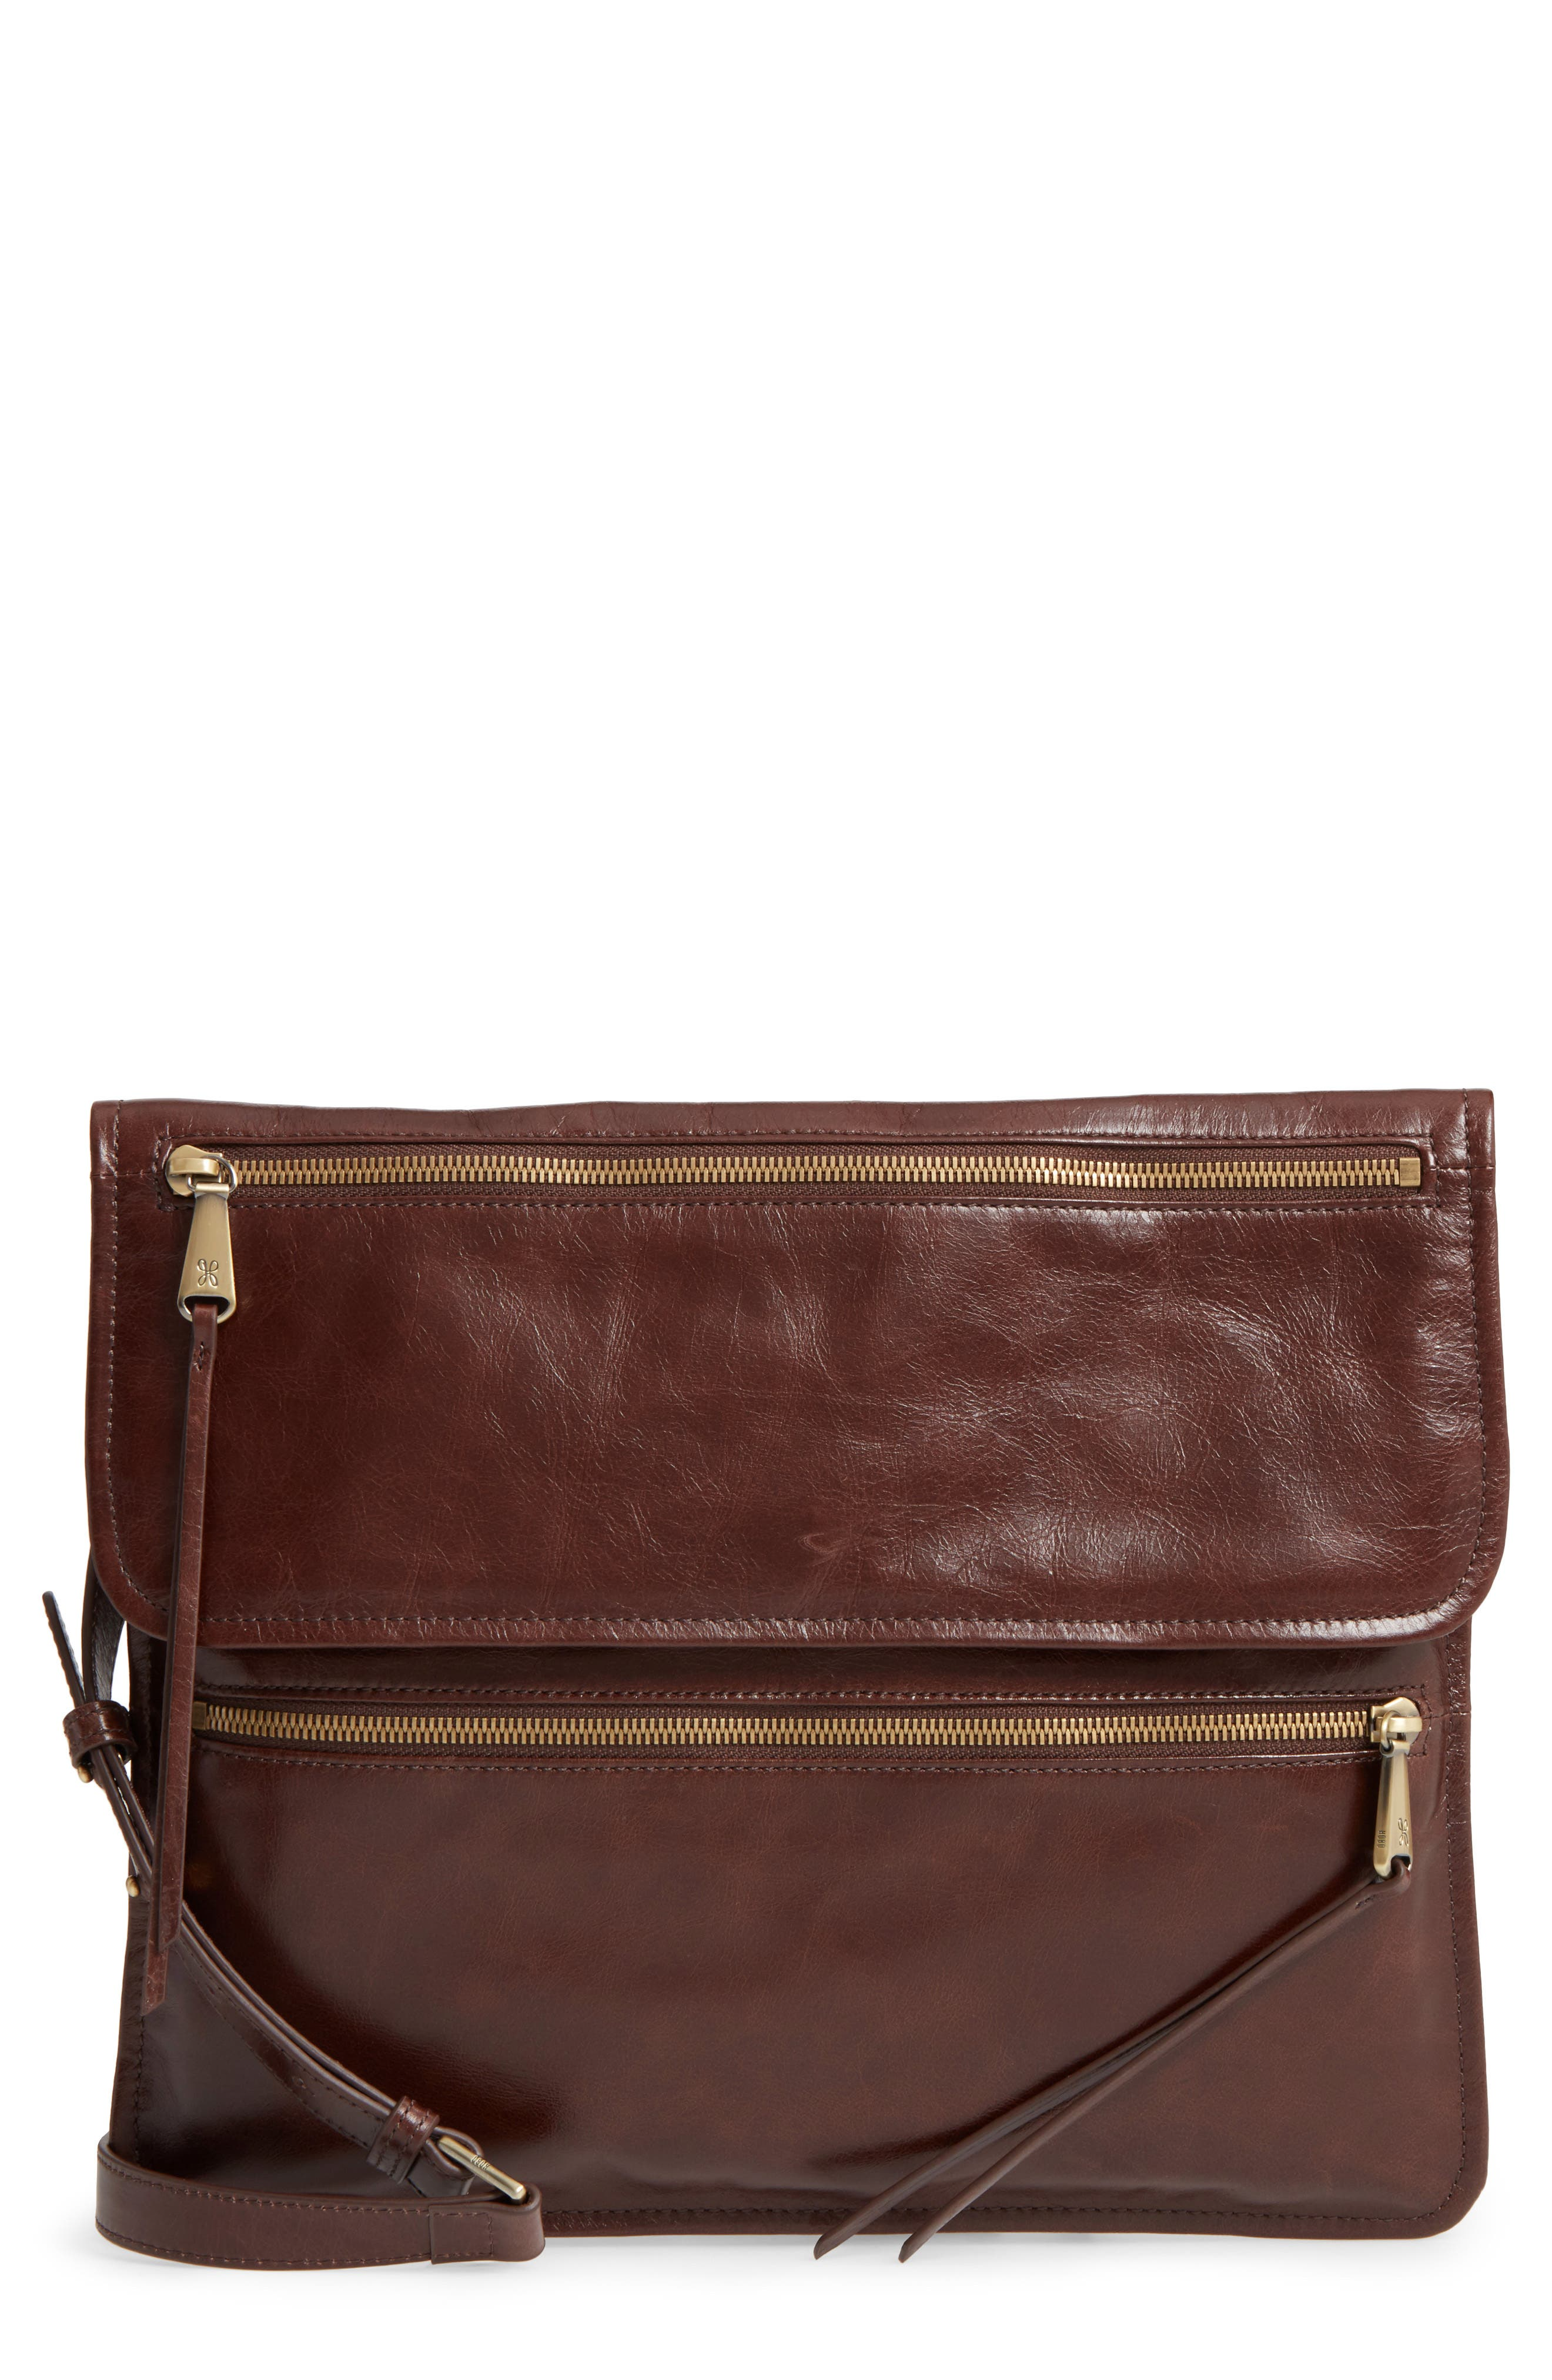 Hobo Vista Calfskin Leather Messenger Bag